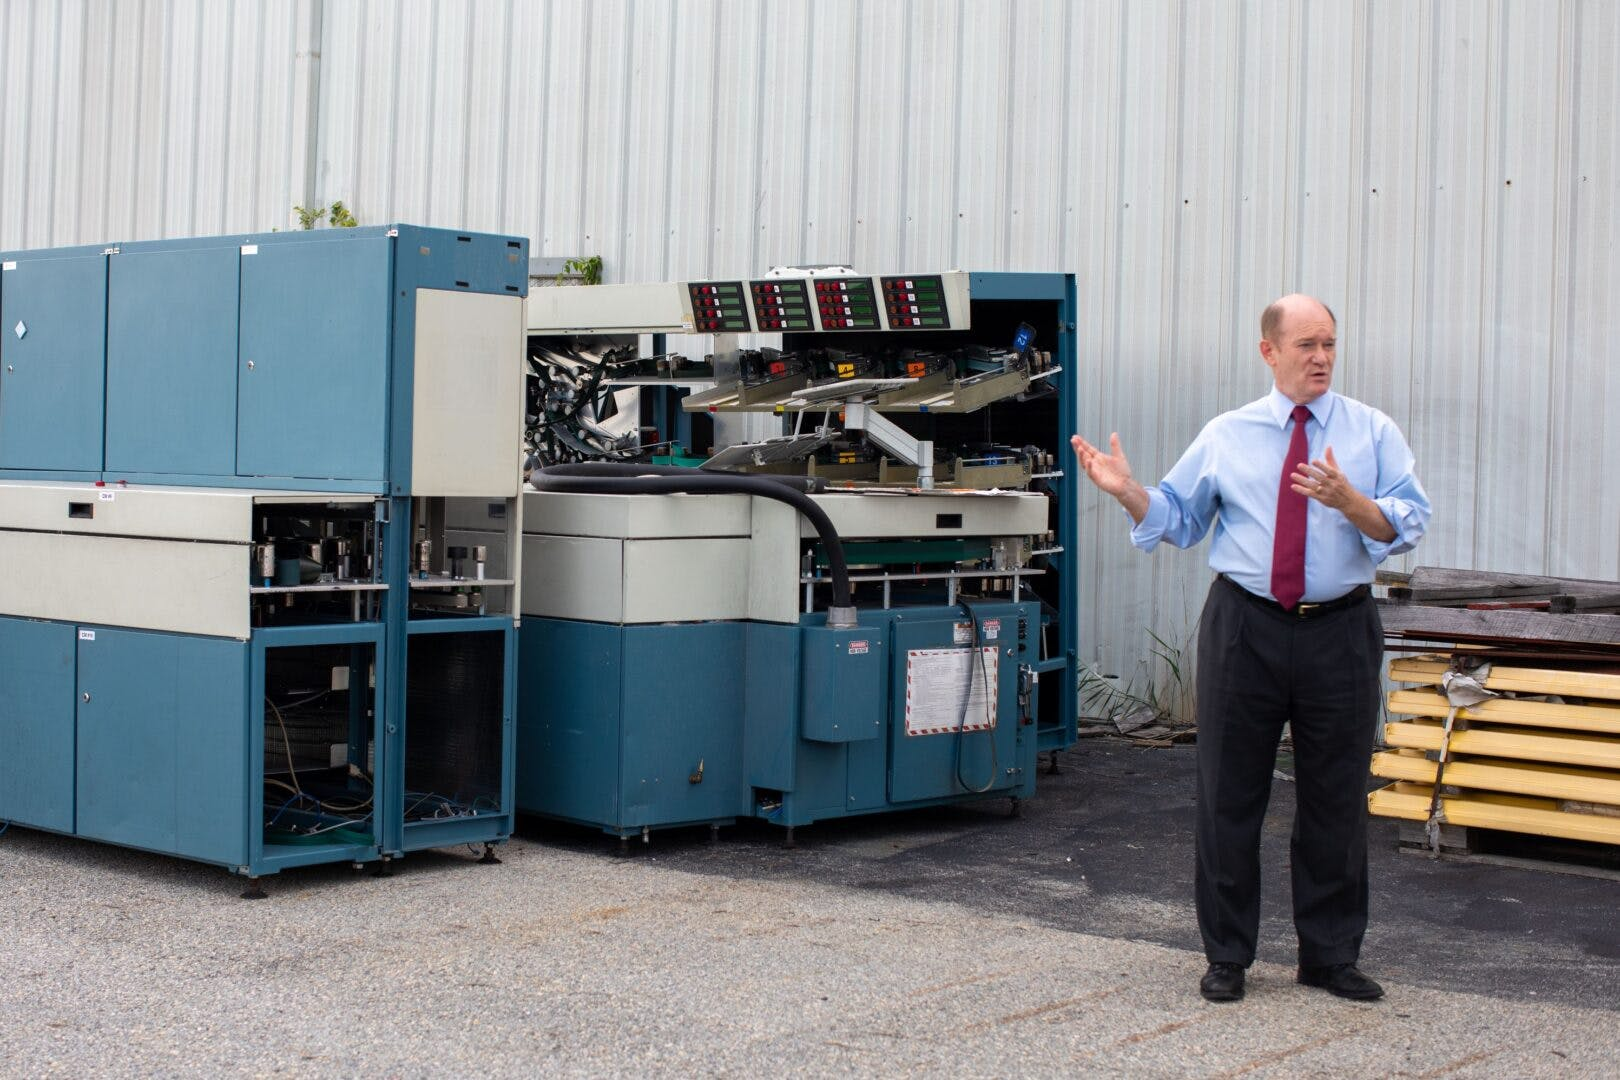 Sen. Chris Coons stands next to mail-sorting equipment left in the rain in New Castle.